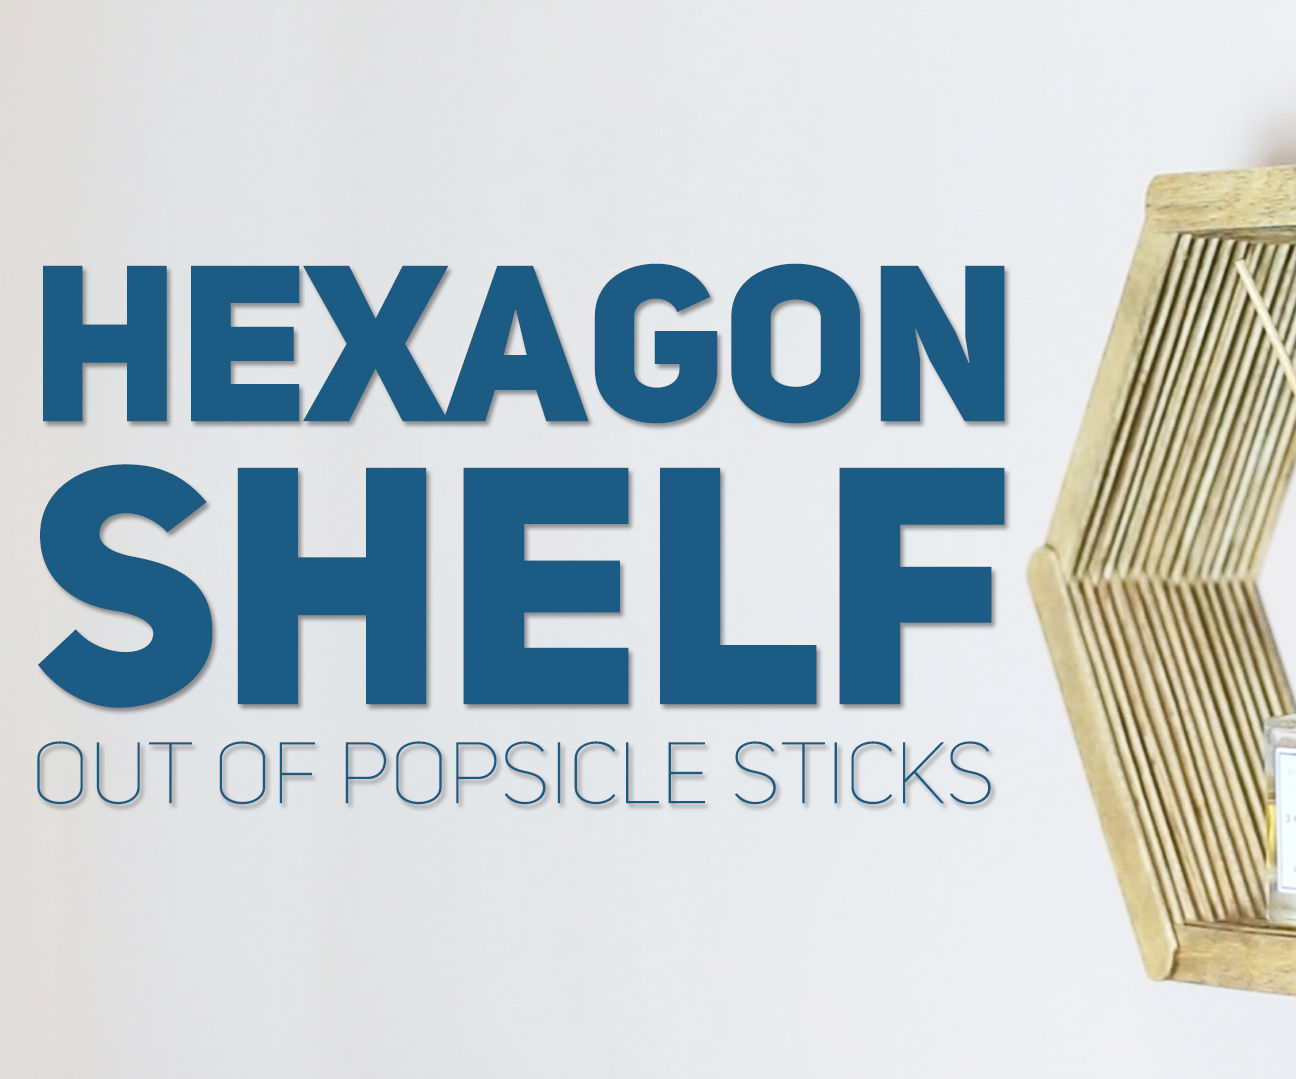 Hexagon shelf out of popsicle sticks